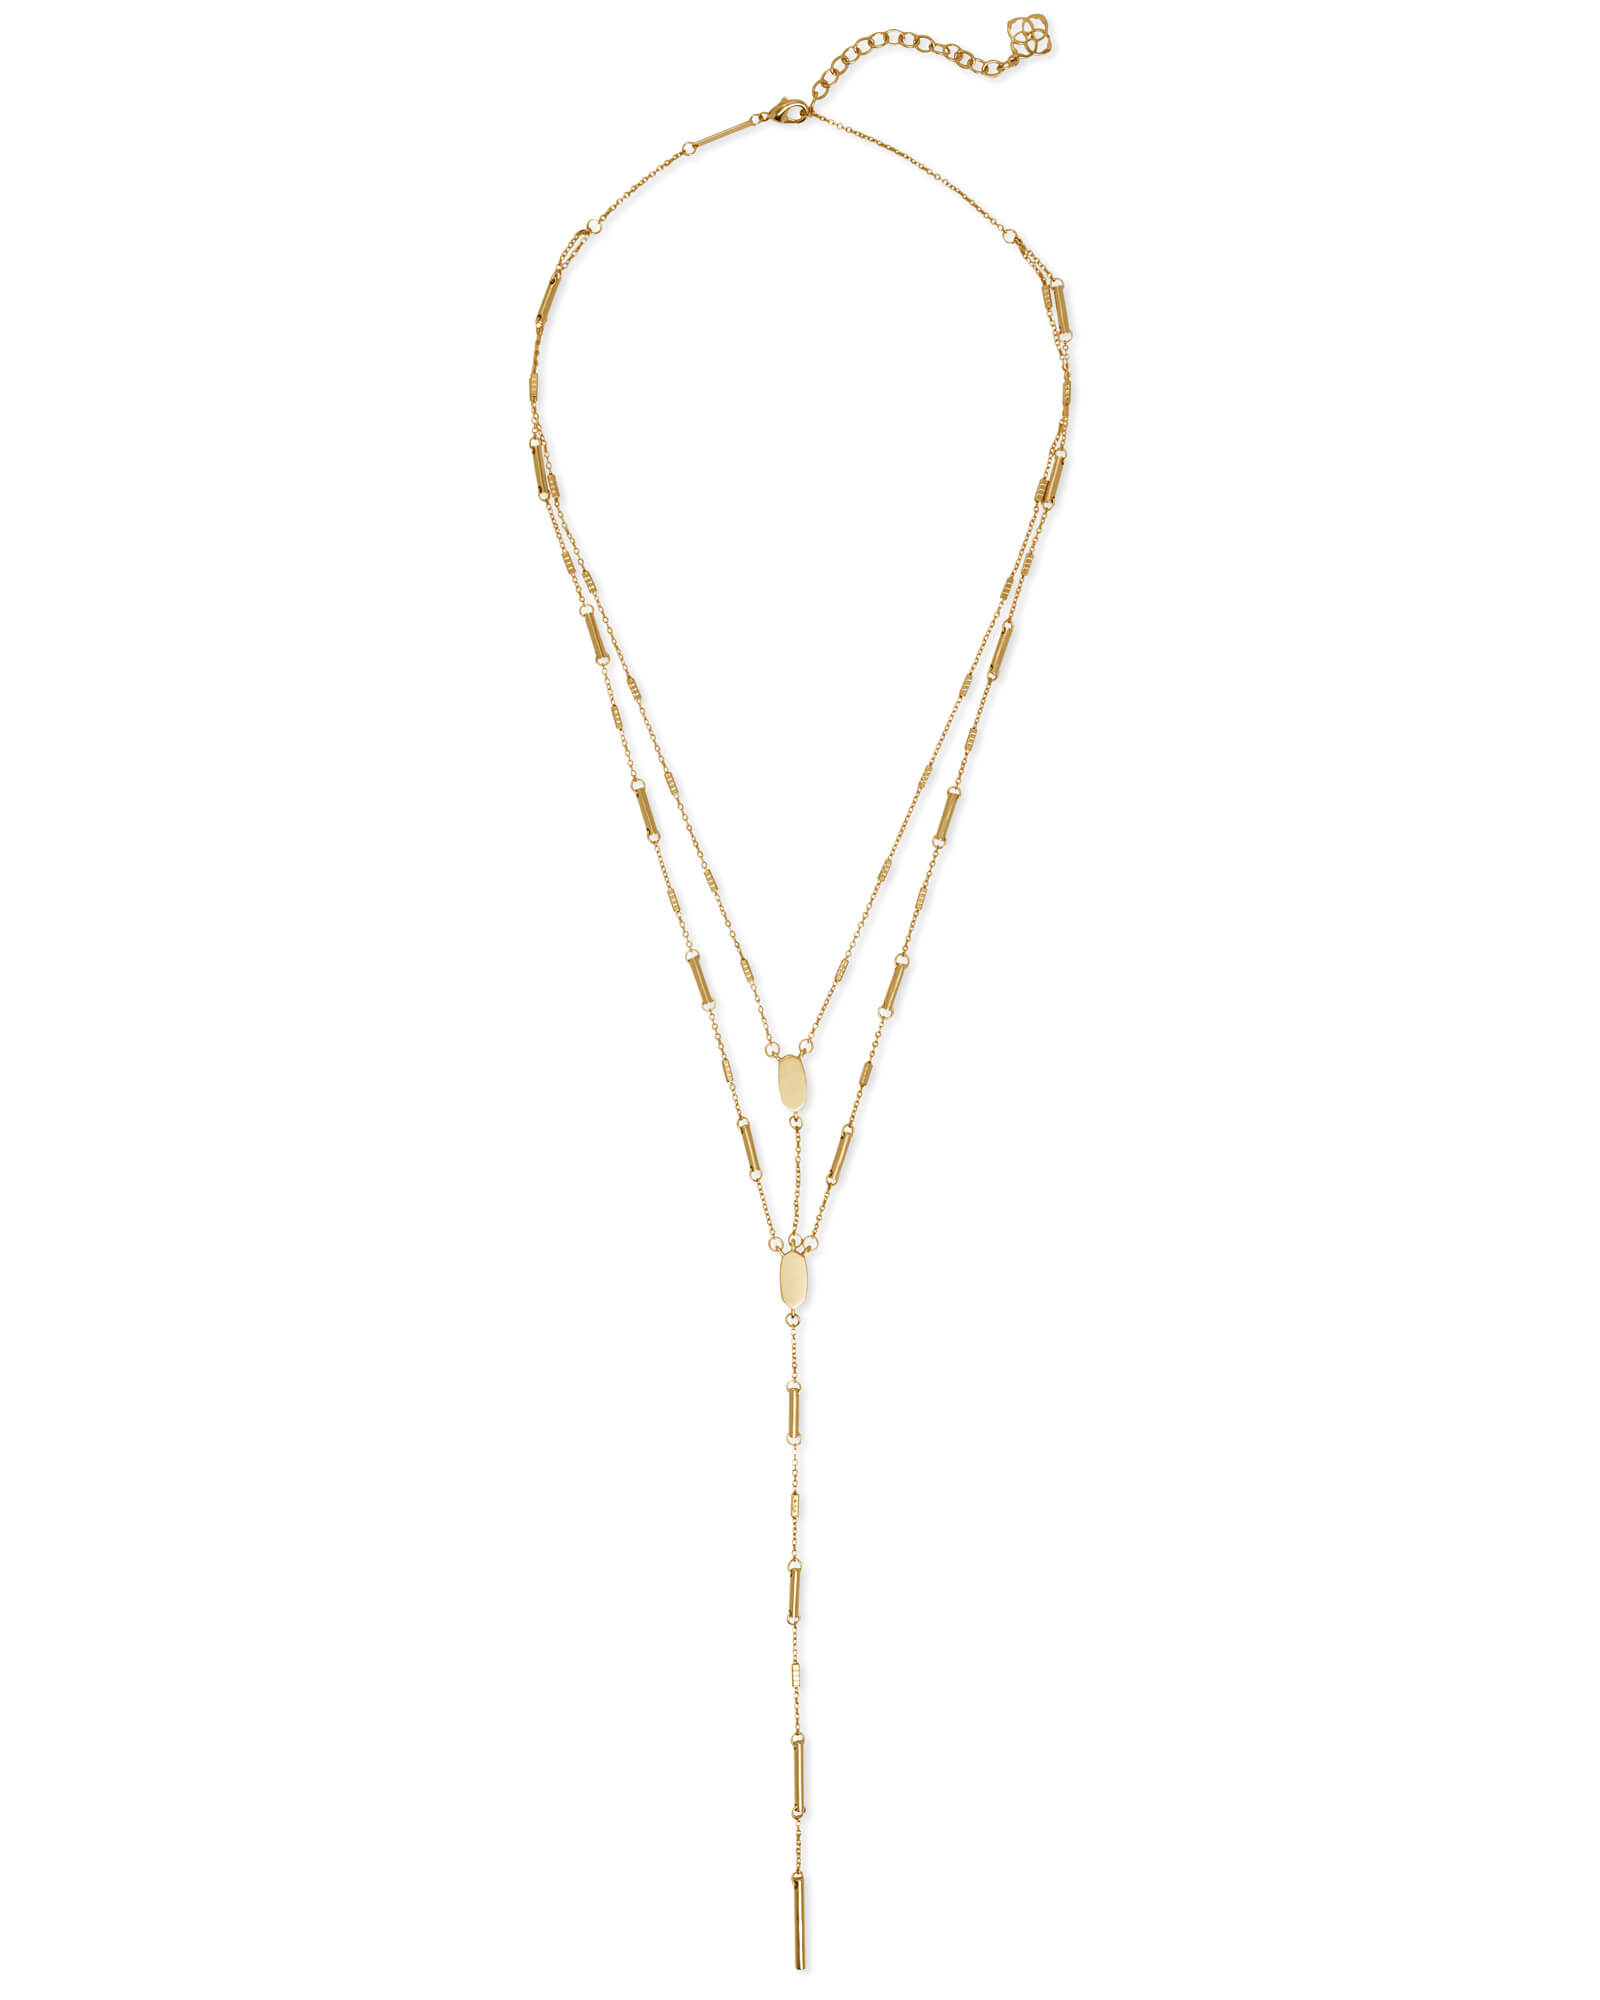 Adelia Y Necklace in Gold